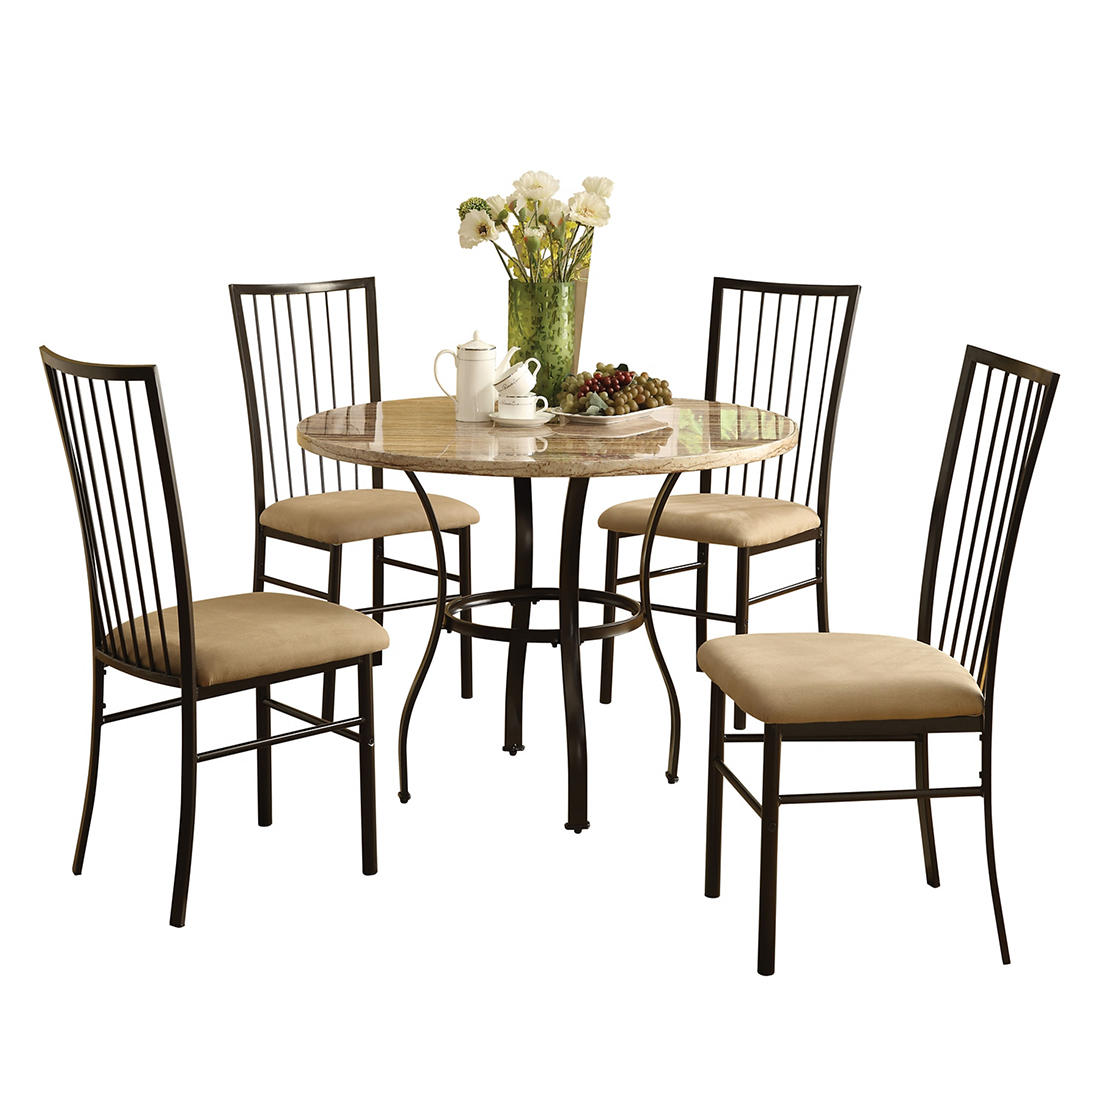 Incredible Acme Darell 5 Pc Faux Marble Dining Set Beige Download Free Architecture Designs Embacsunscenecom